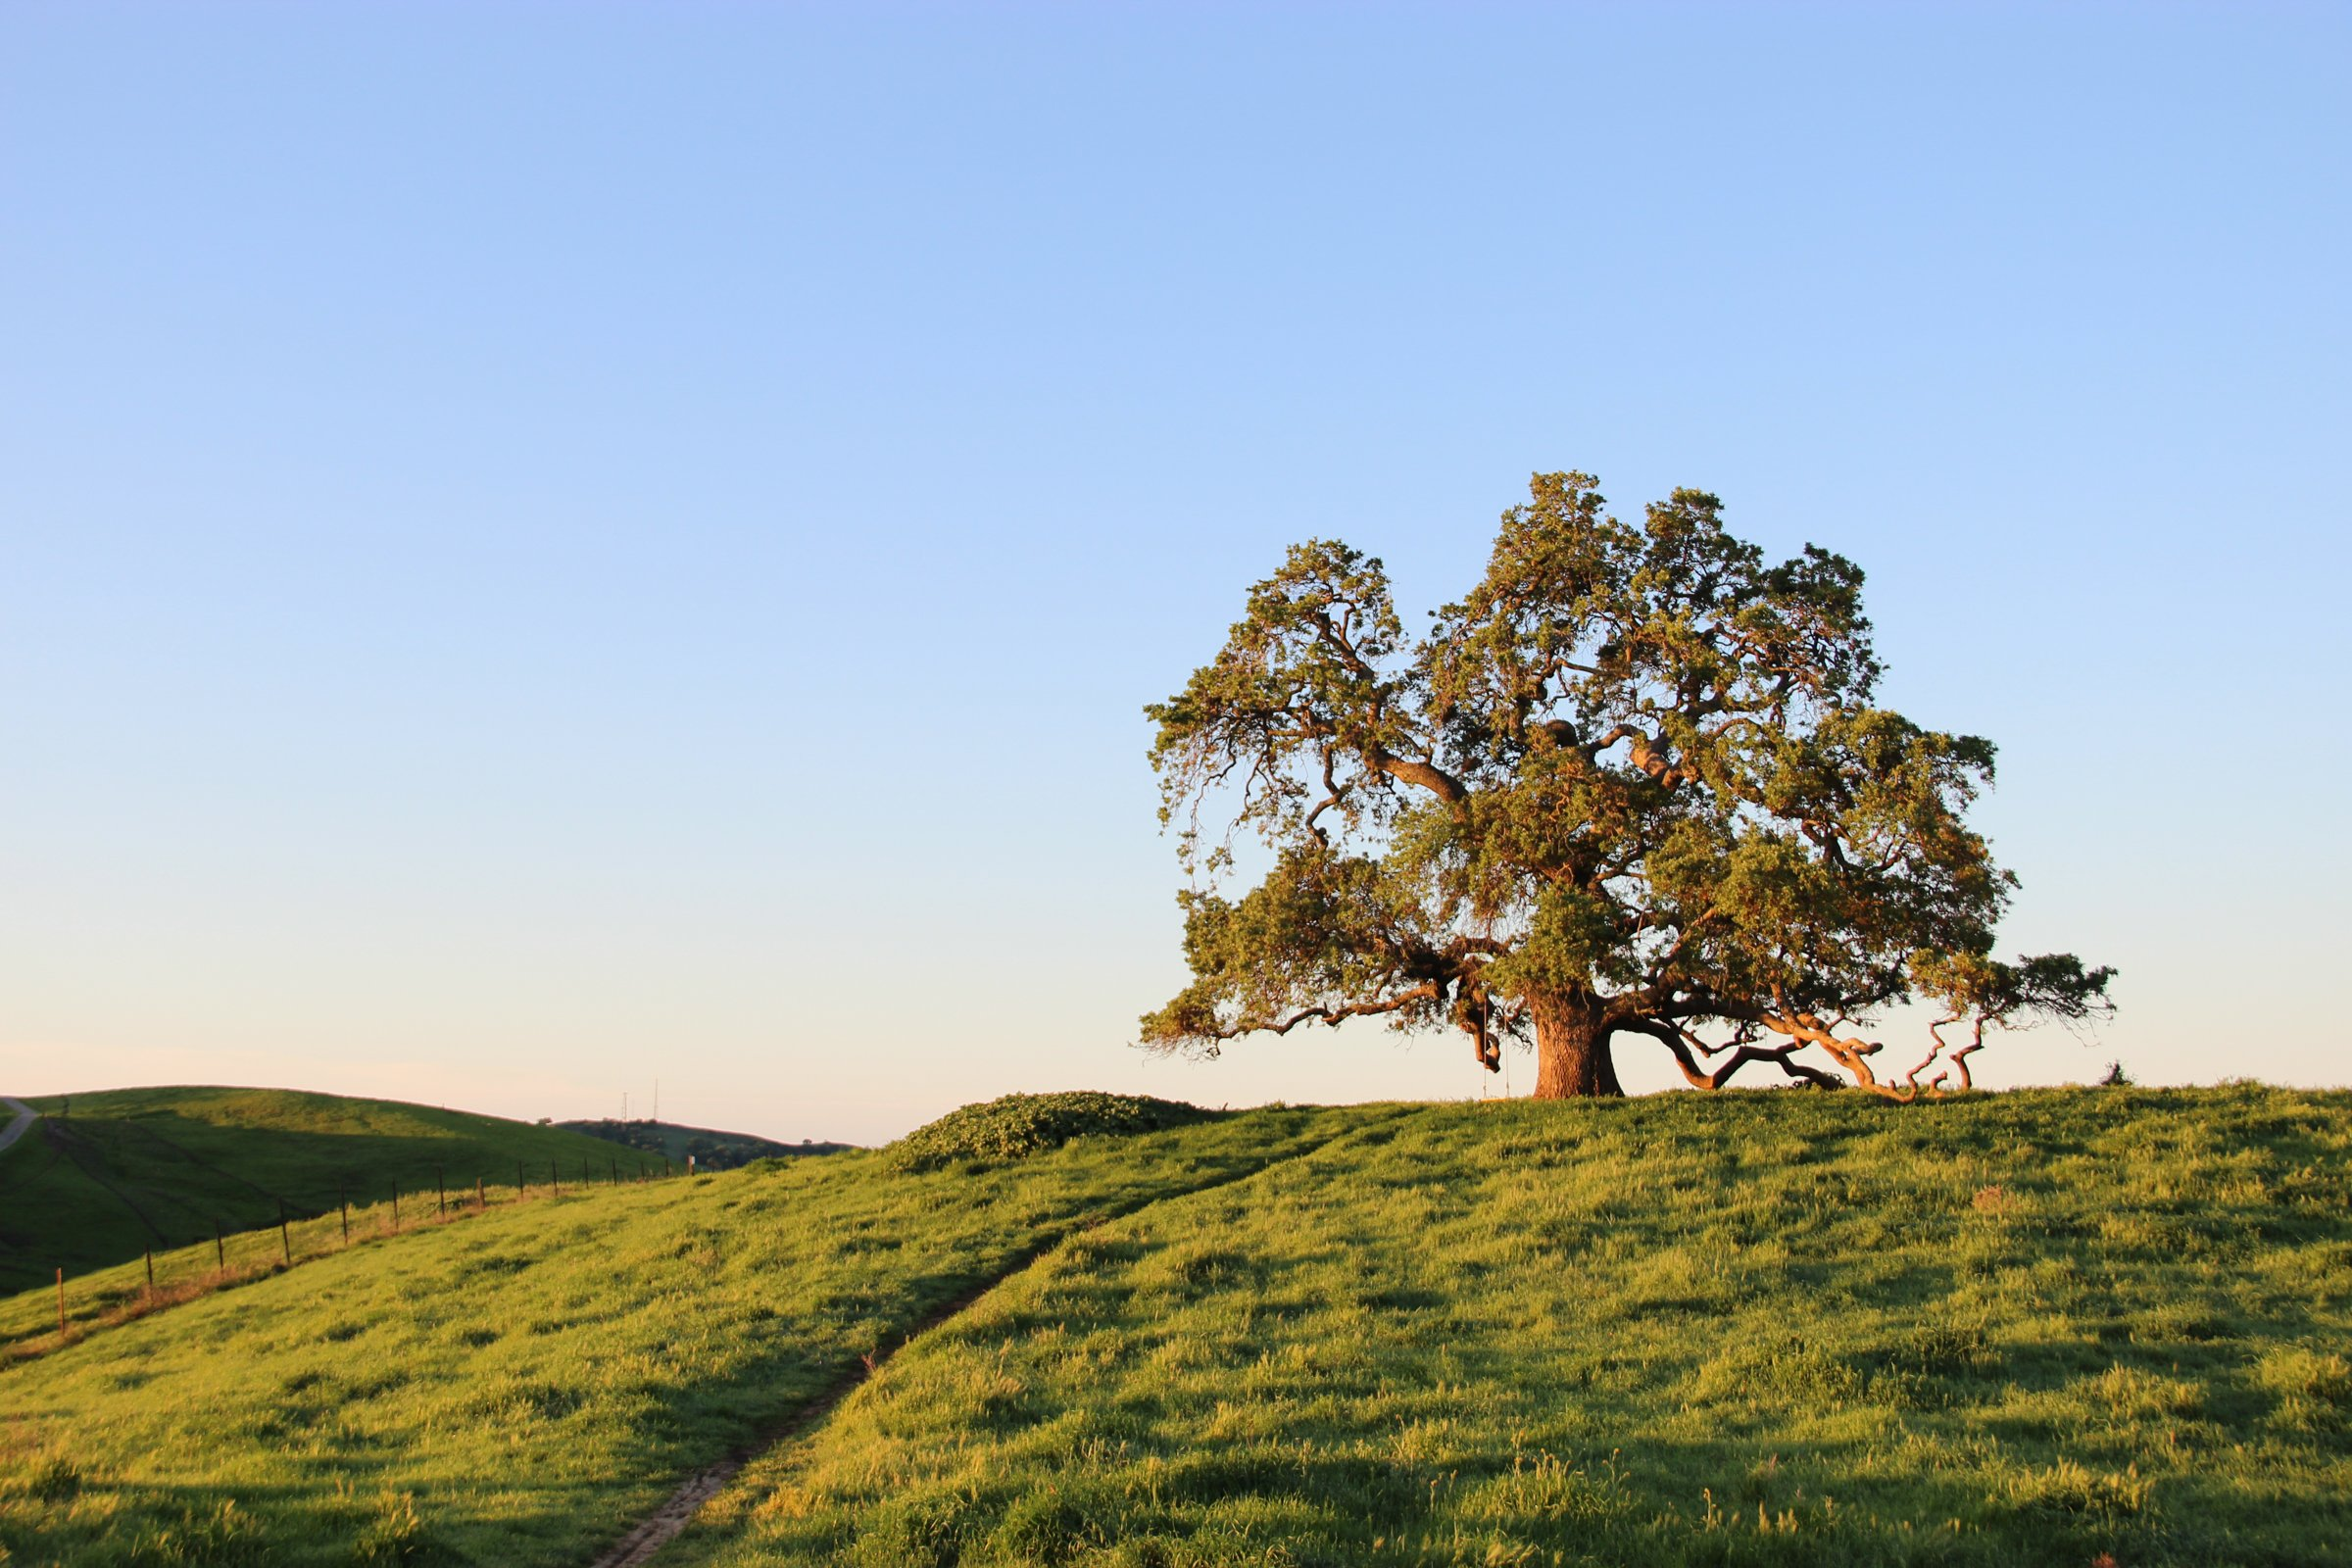 Oak Tree in Field Under Clear Sky